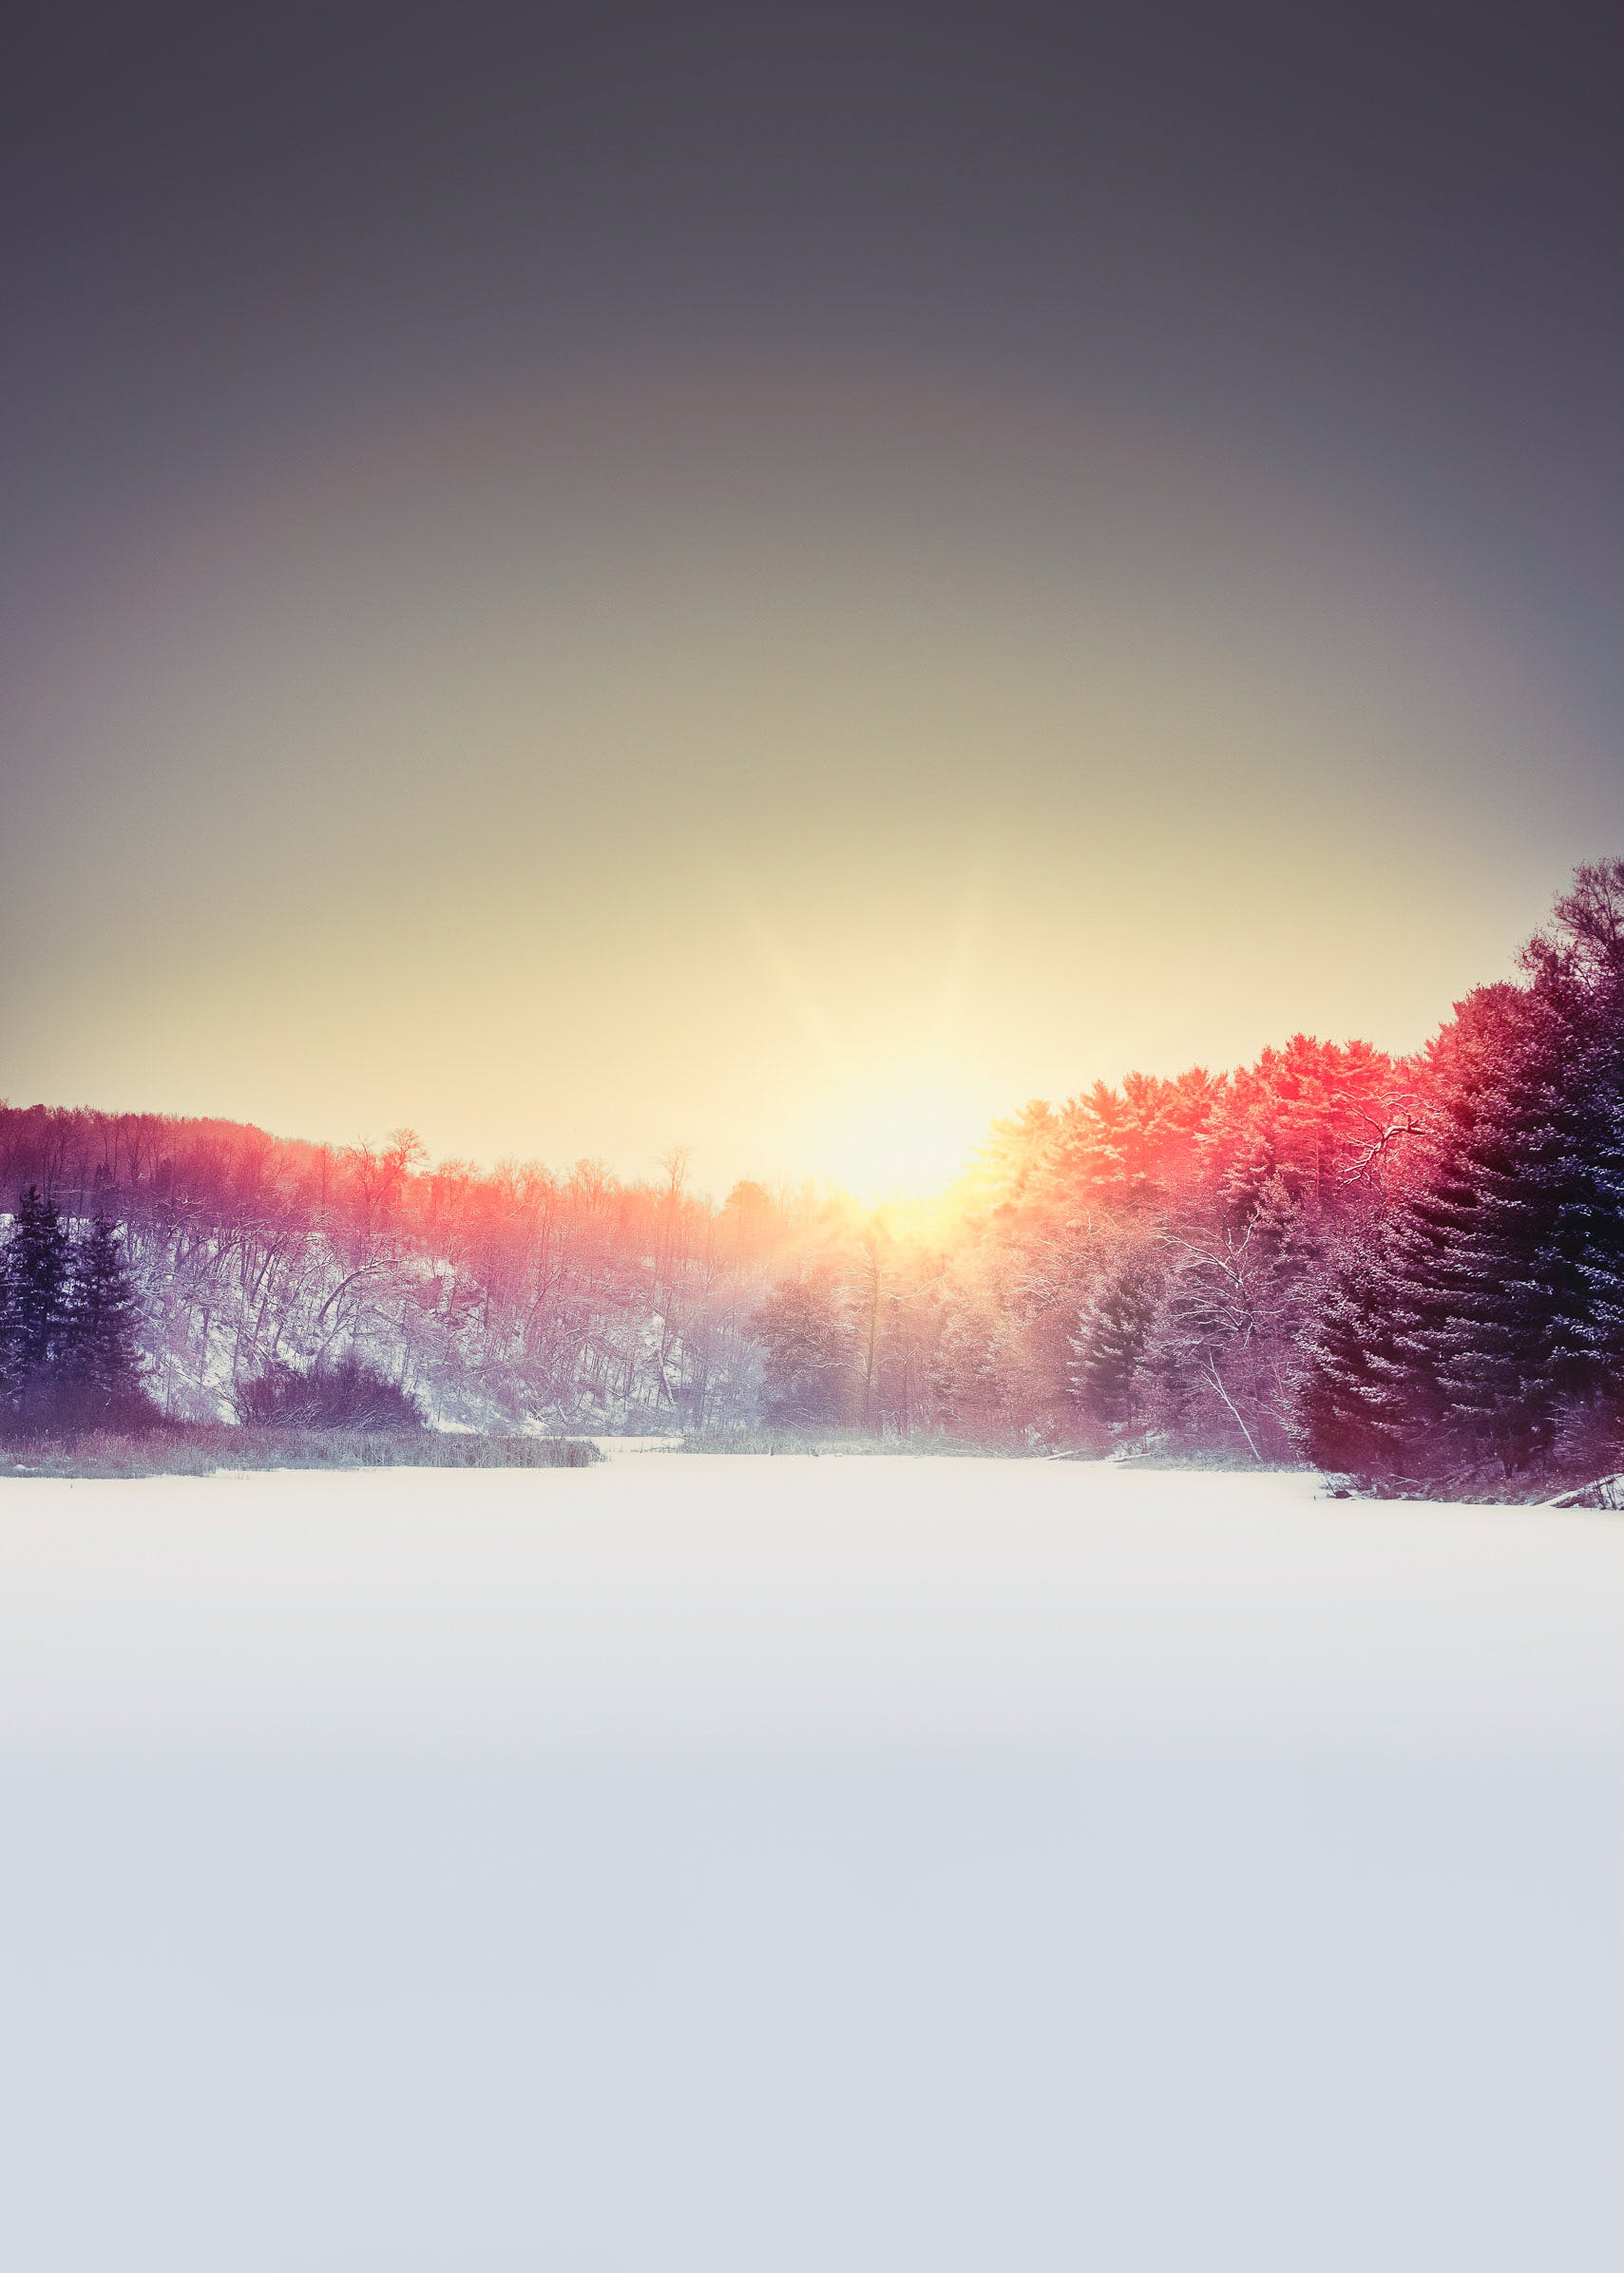 Free stock photo of android wallpaper, evening sun, frozen, iphone wallpaper